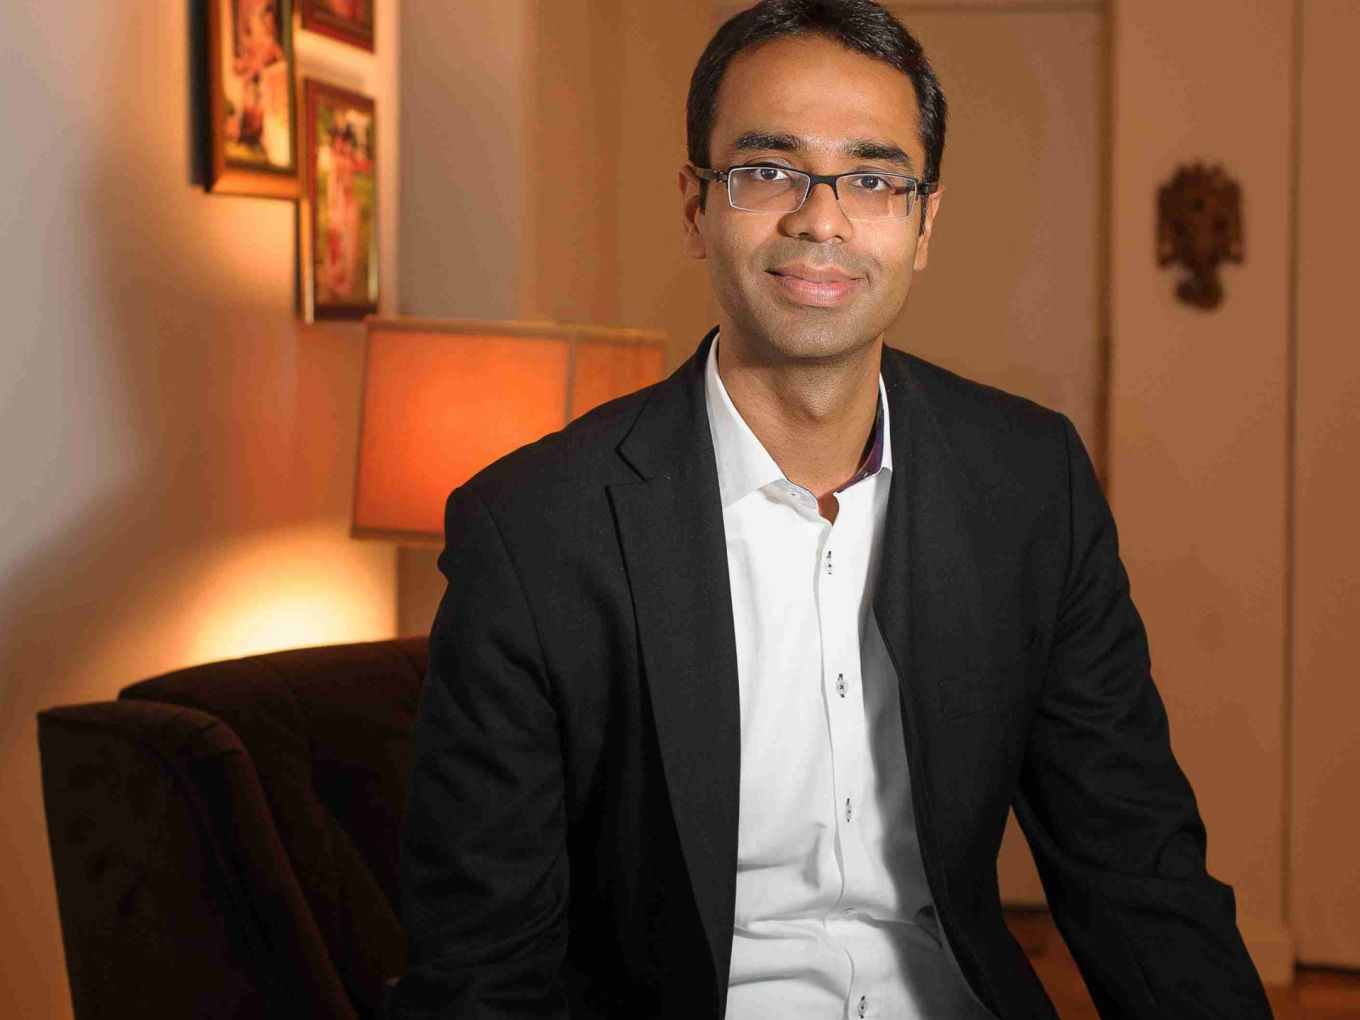 WhiteHat Jr CEO Karan Bajaj On Controversial Ads, Lawsuits And More